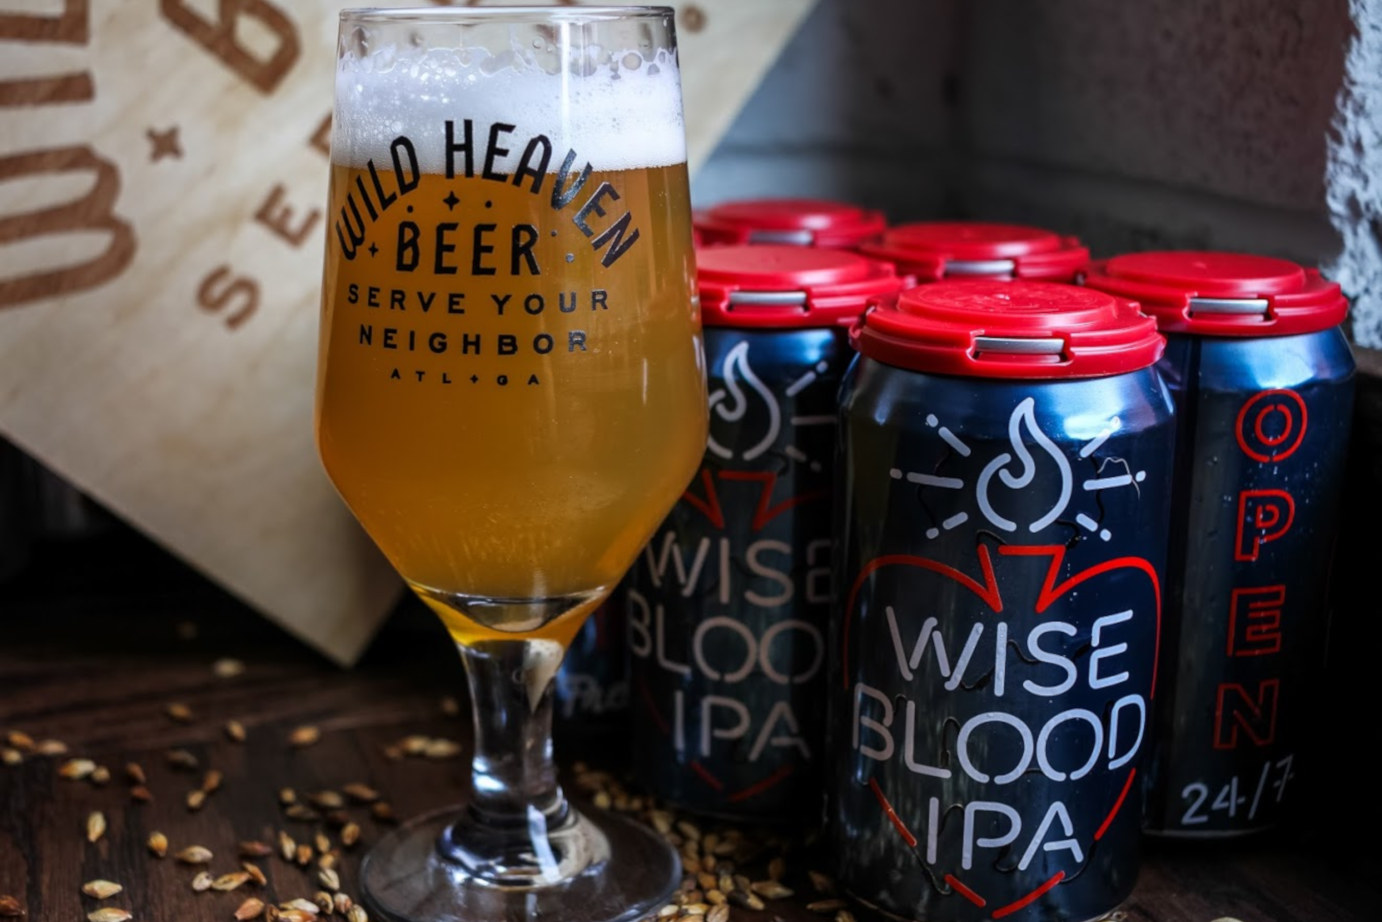 Wise blood ipa glass and can